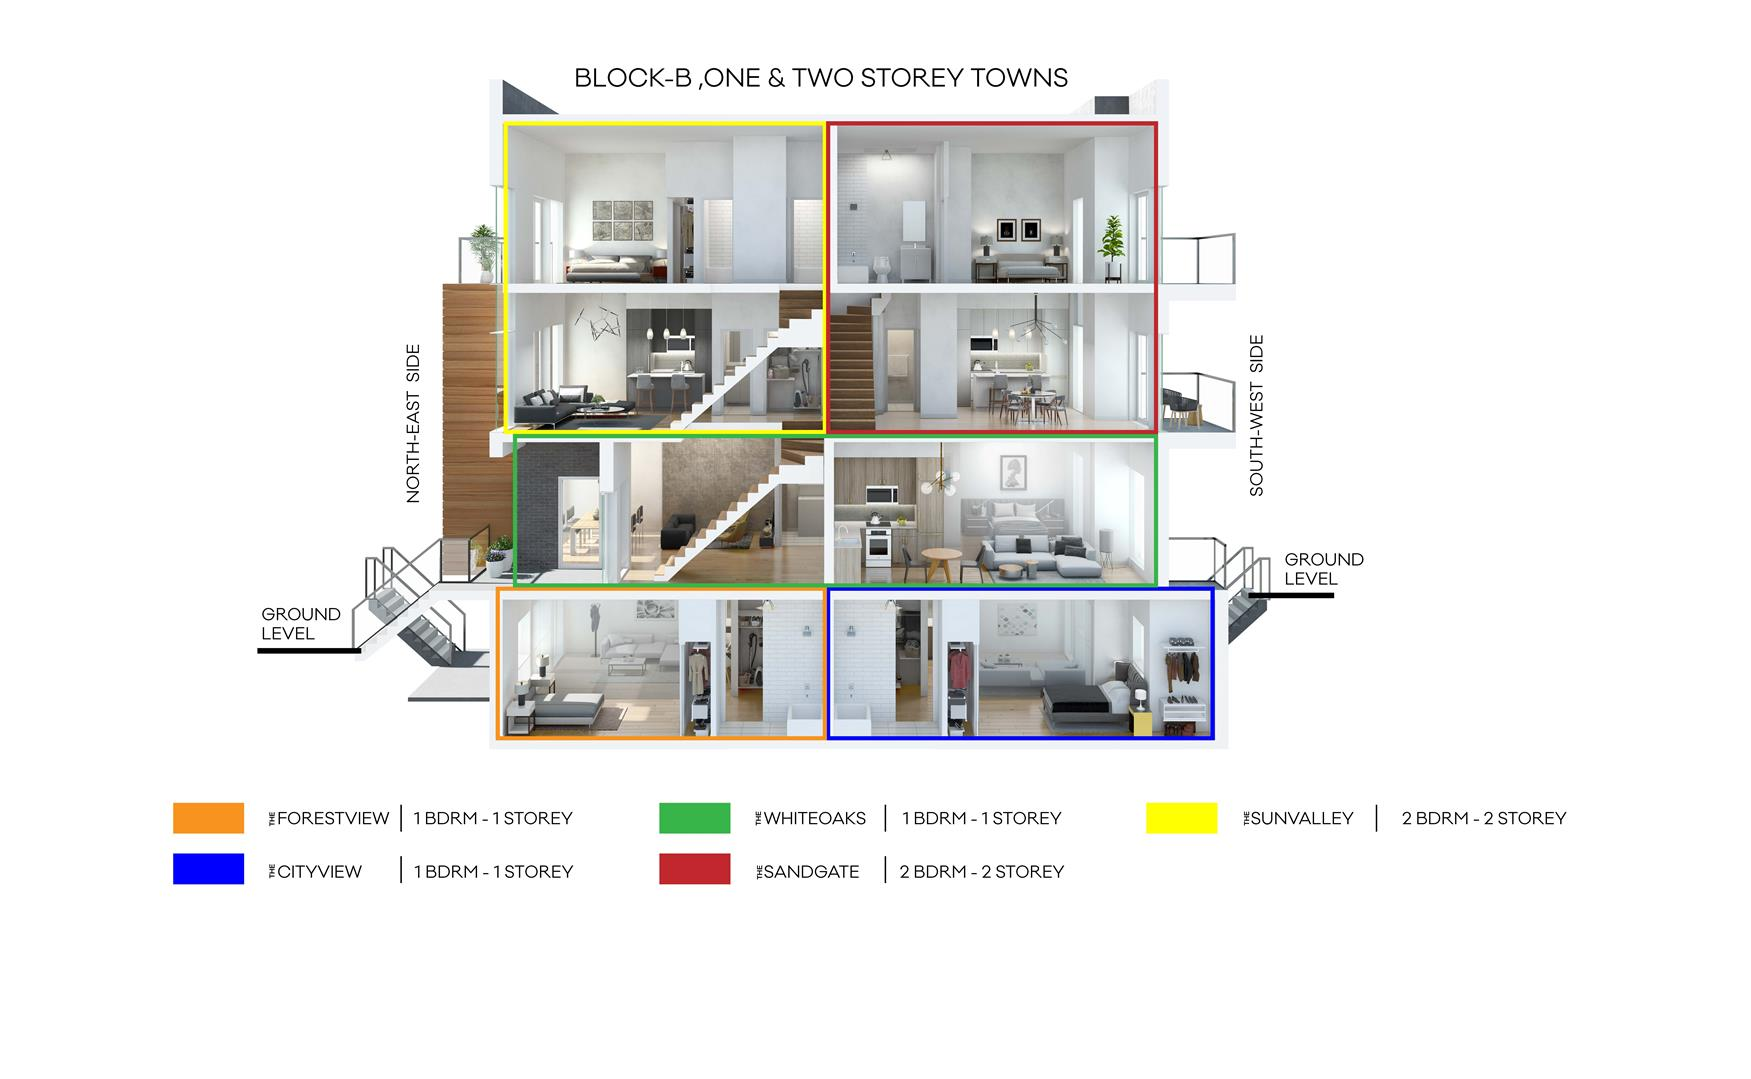 The Clarkson Urban Towns Suite Interior Diagram